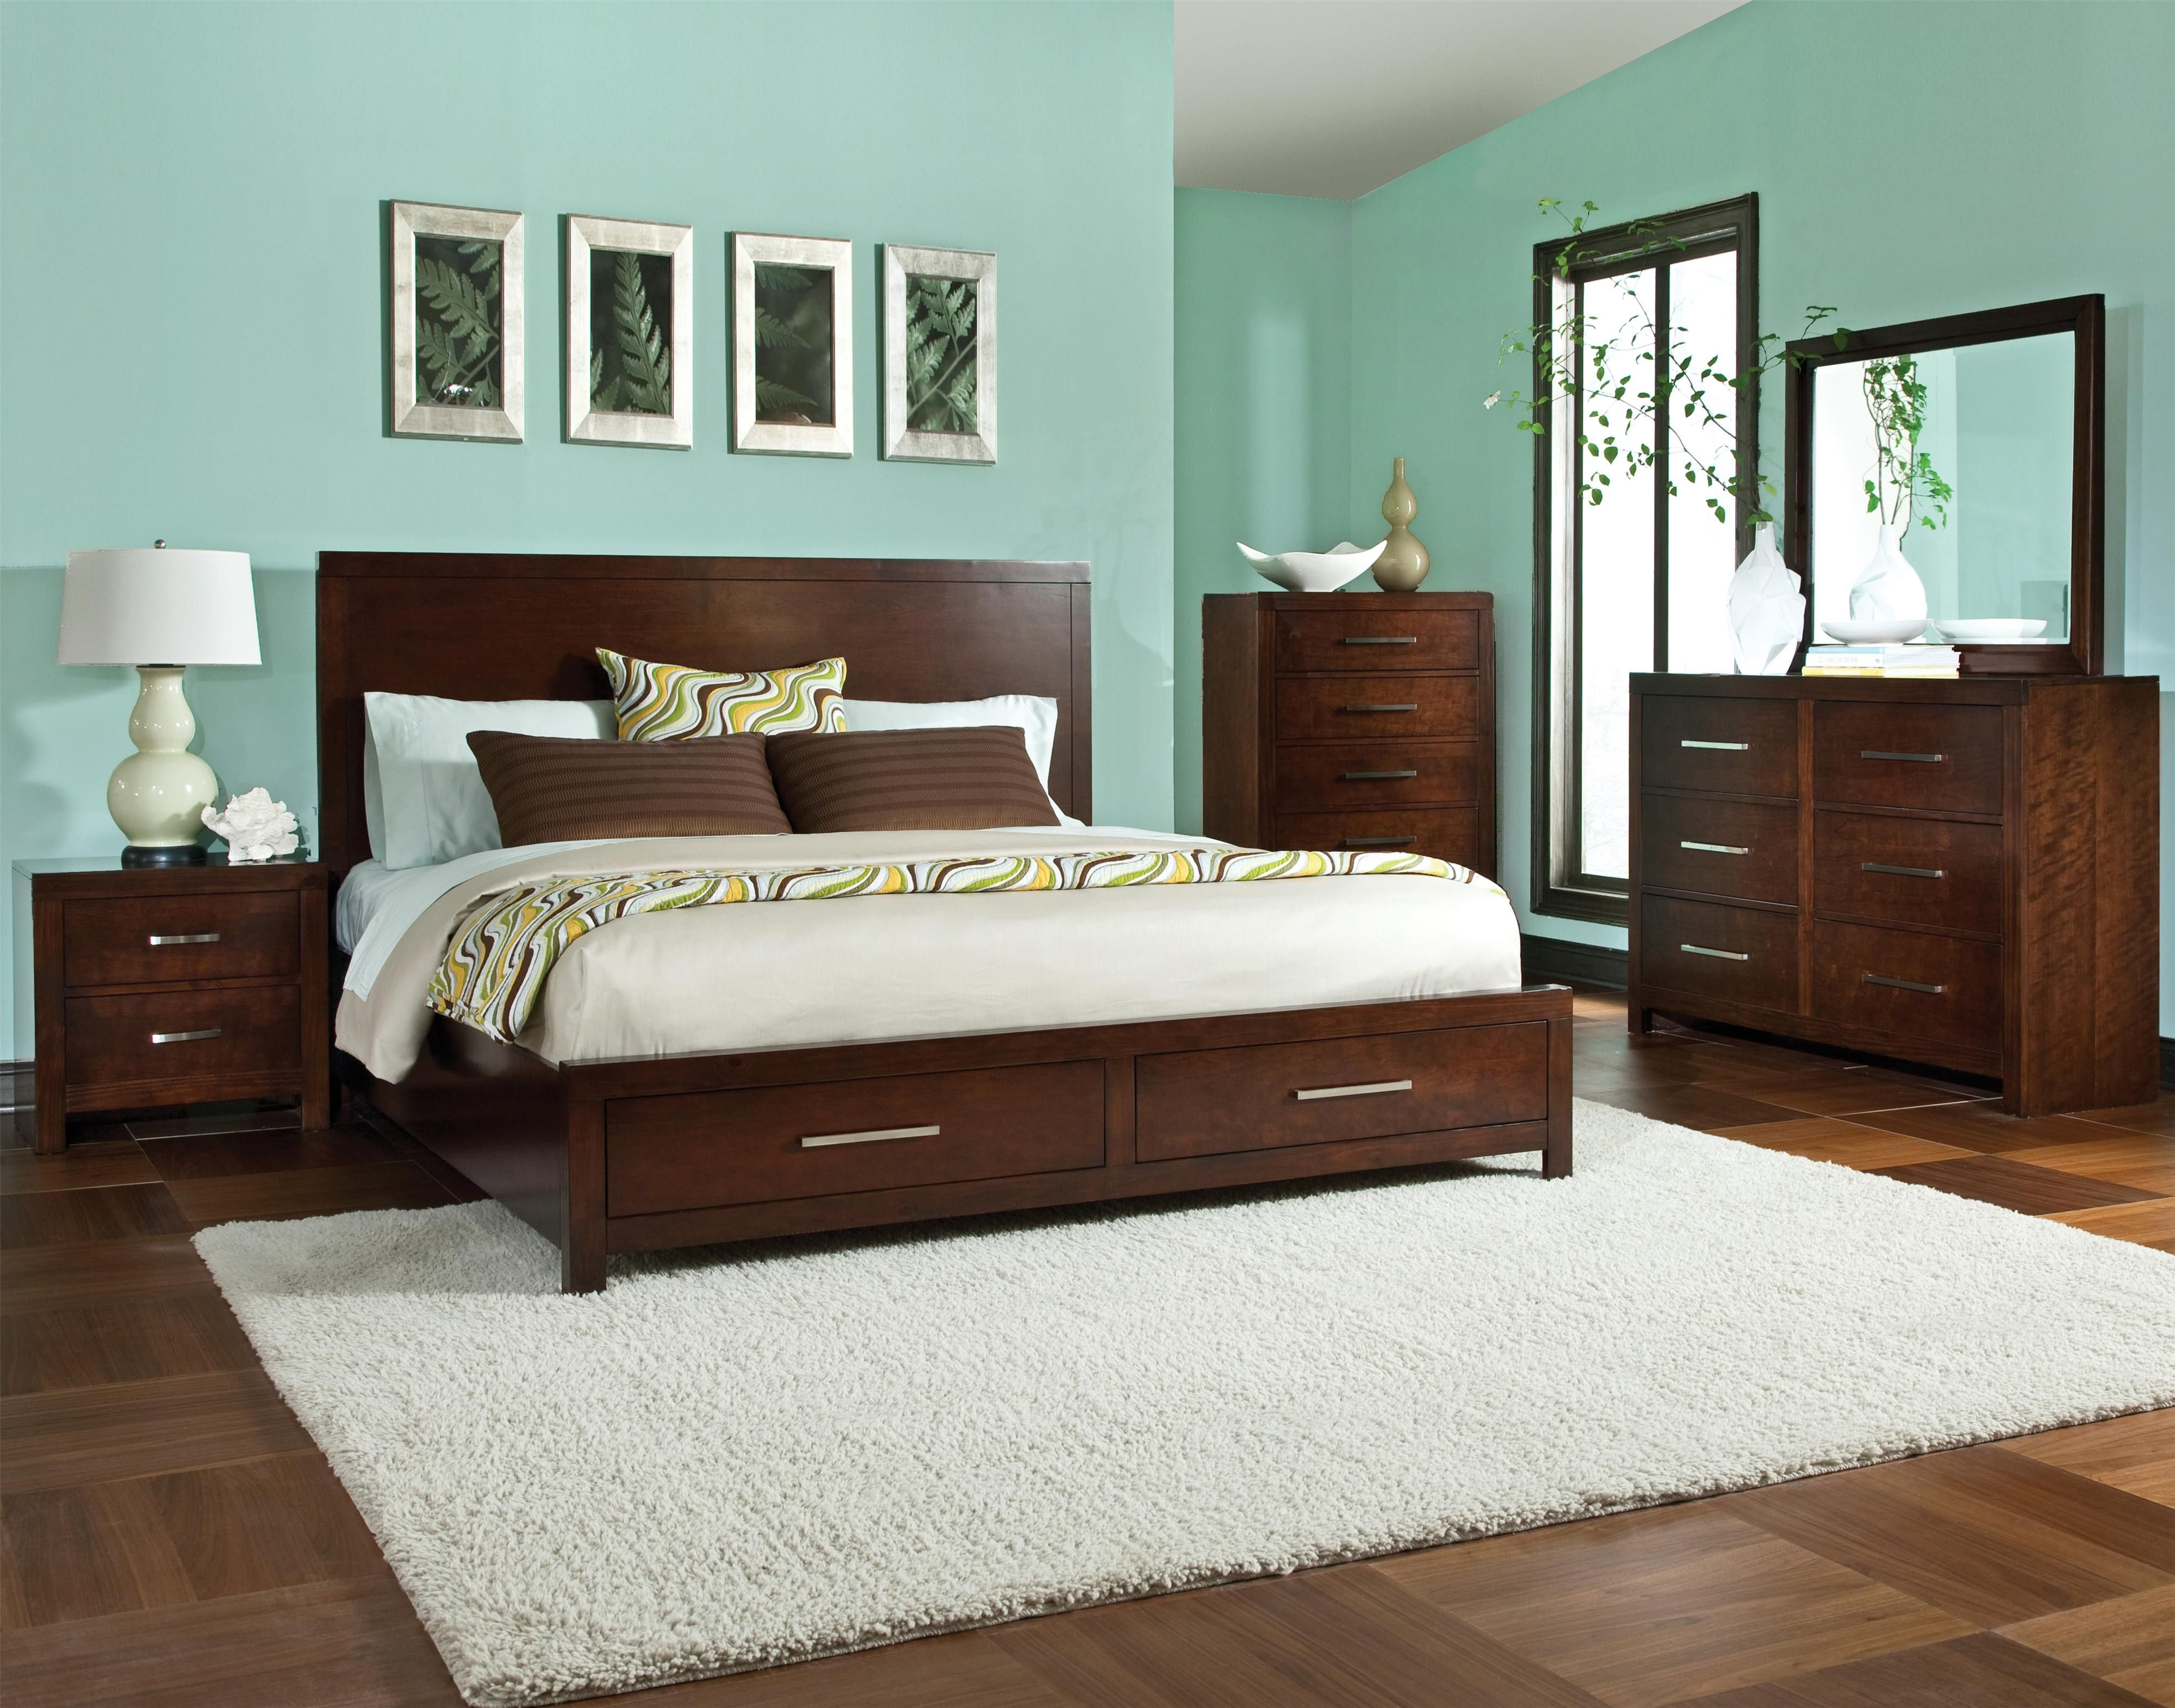 King Platform Bed With Storage Drawers Love The Simplicity Of The Bed Frame For The Home